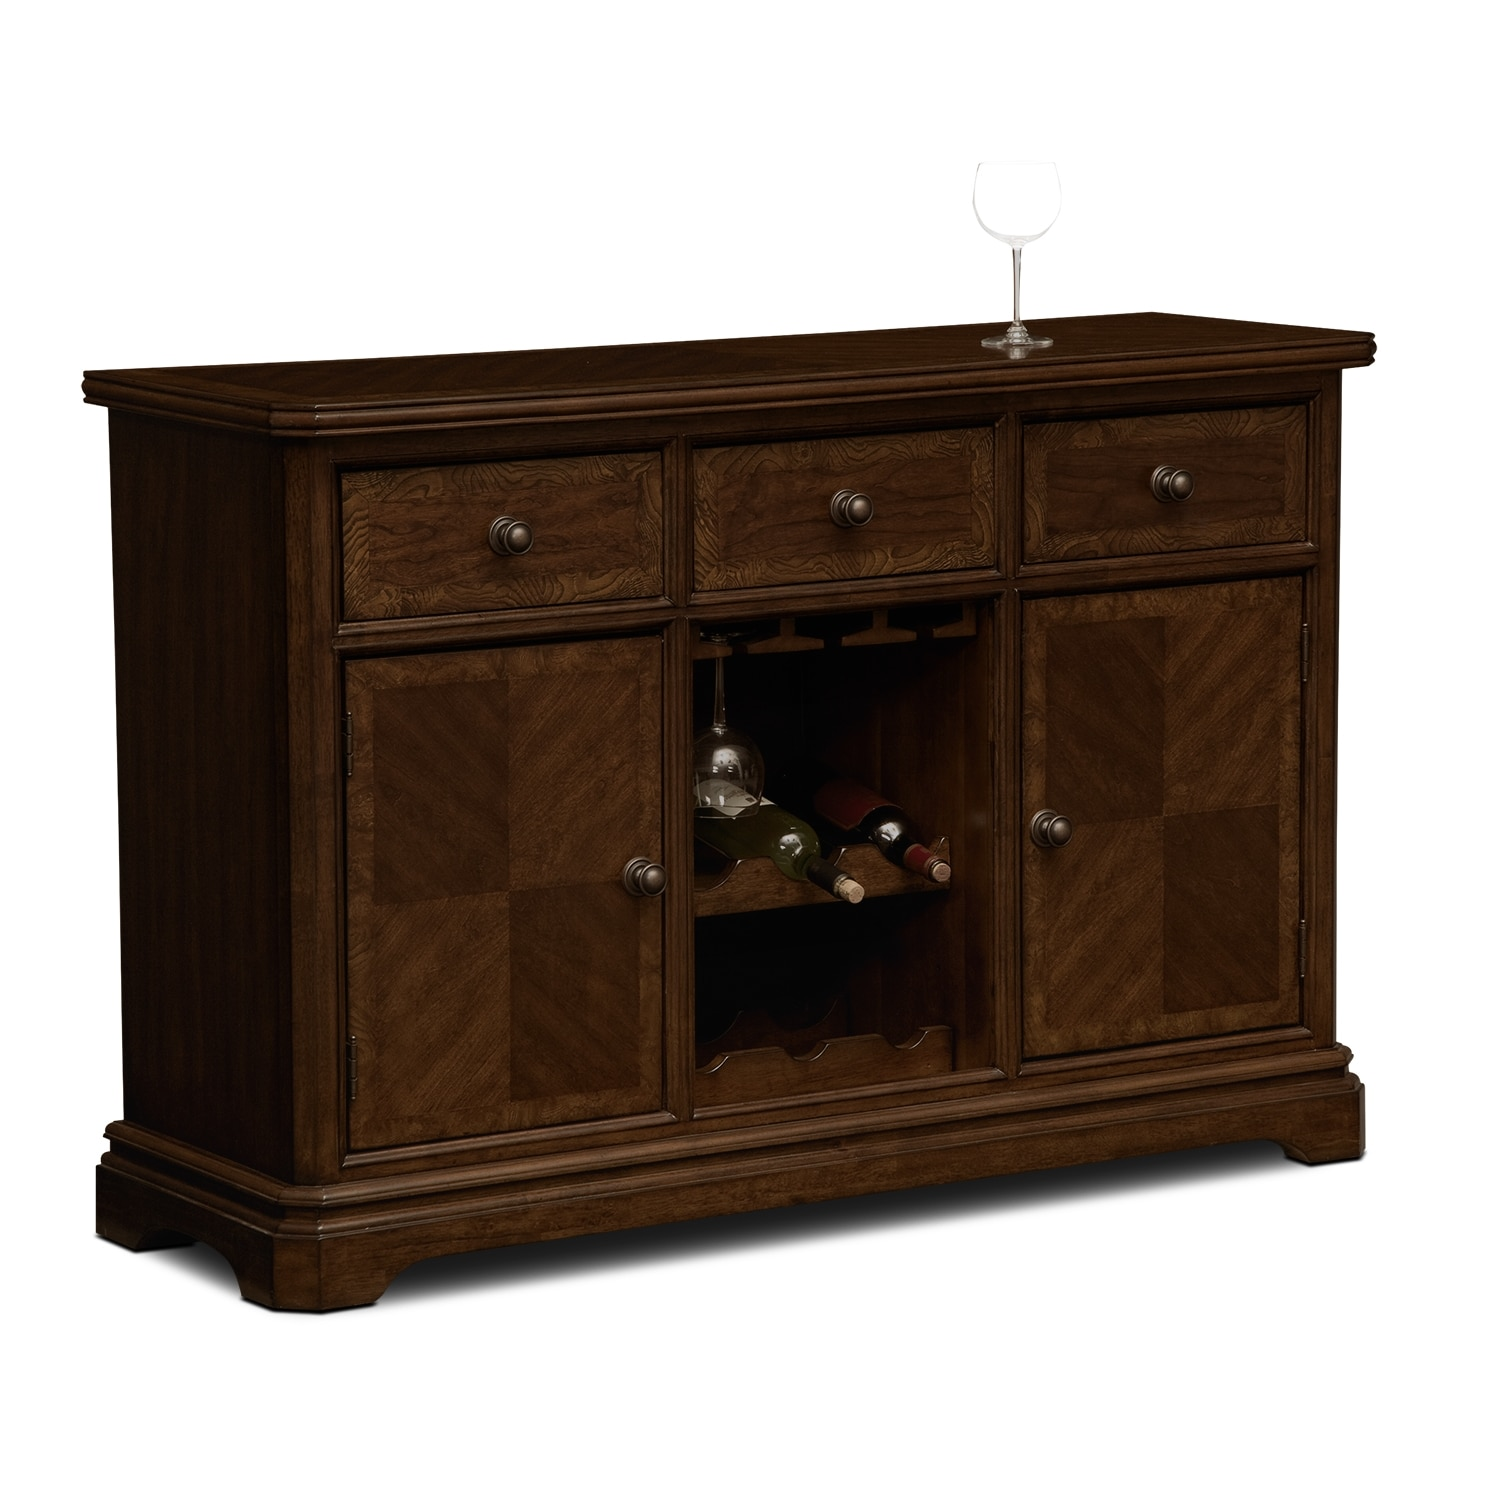 Westin dining room sideboard value city furniture for Dining room dresser